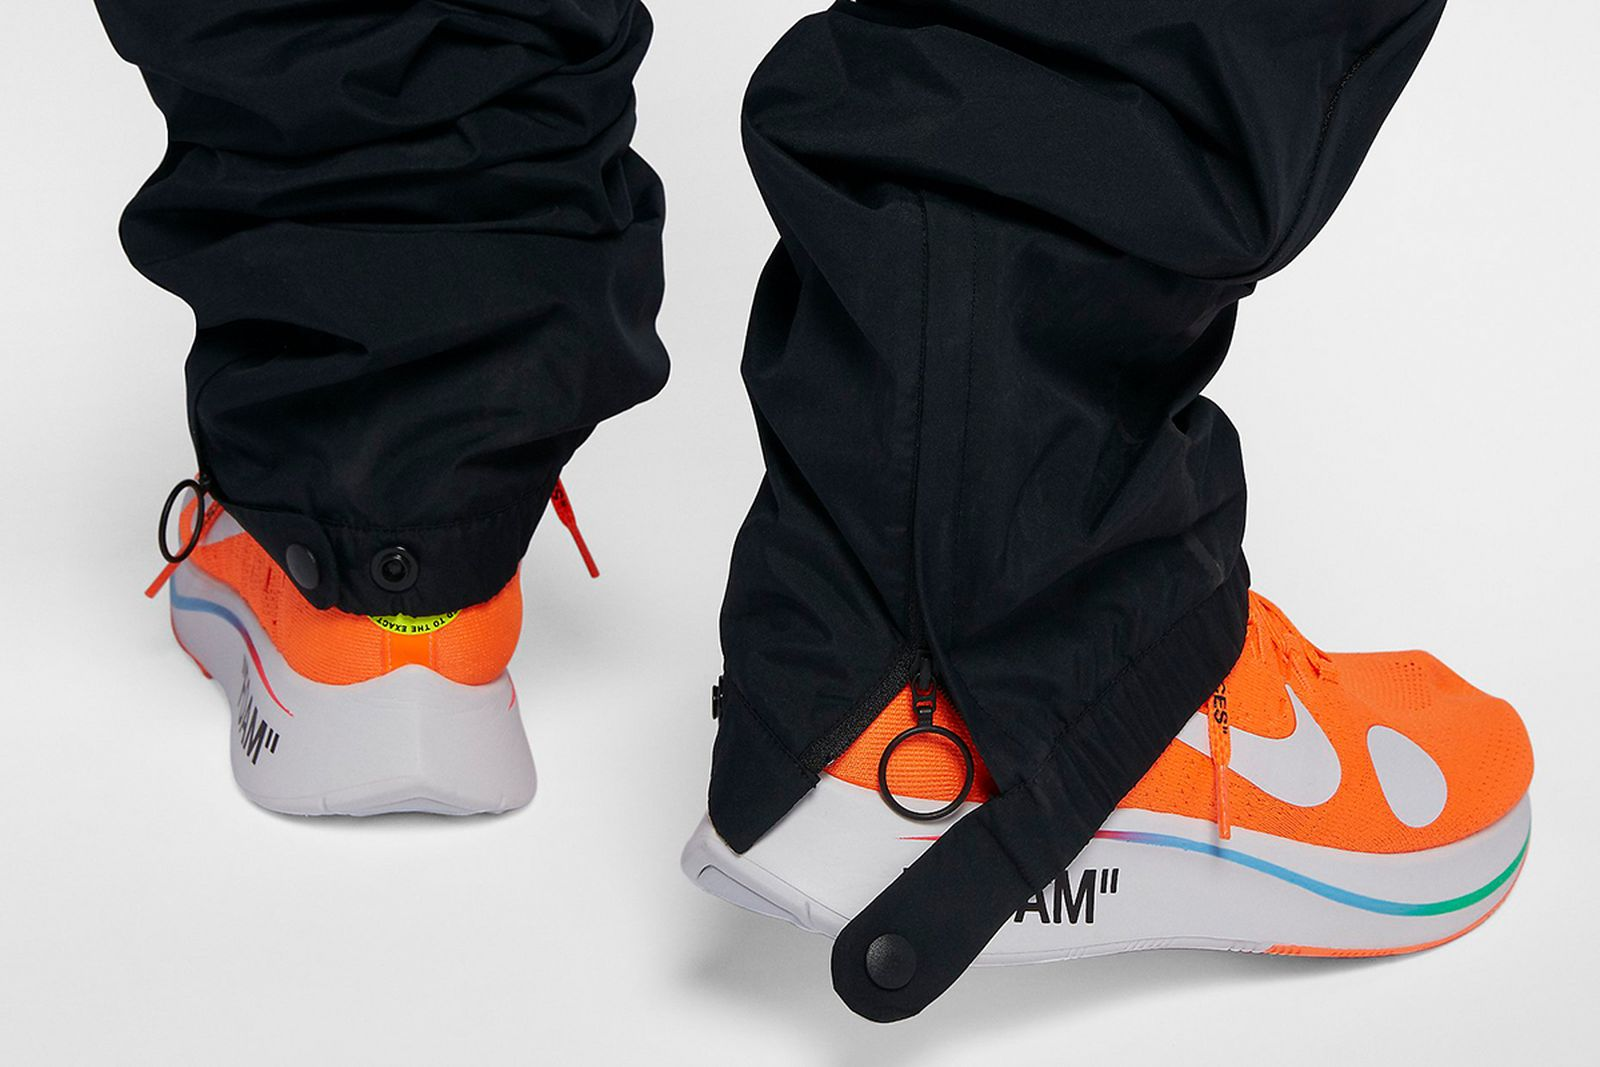 track pants3 2018 FIFA World Cup Nike OFF-WHITE c/o Virgil Abloh